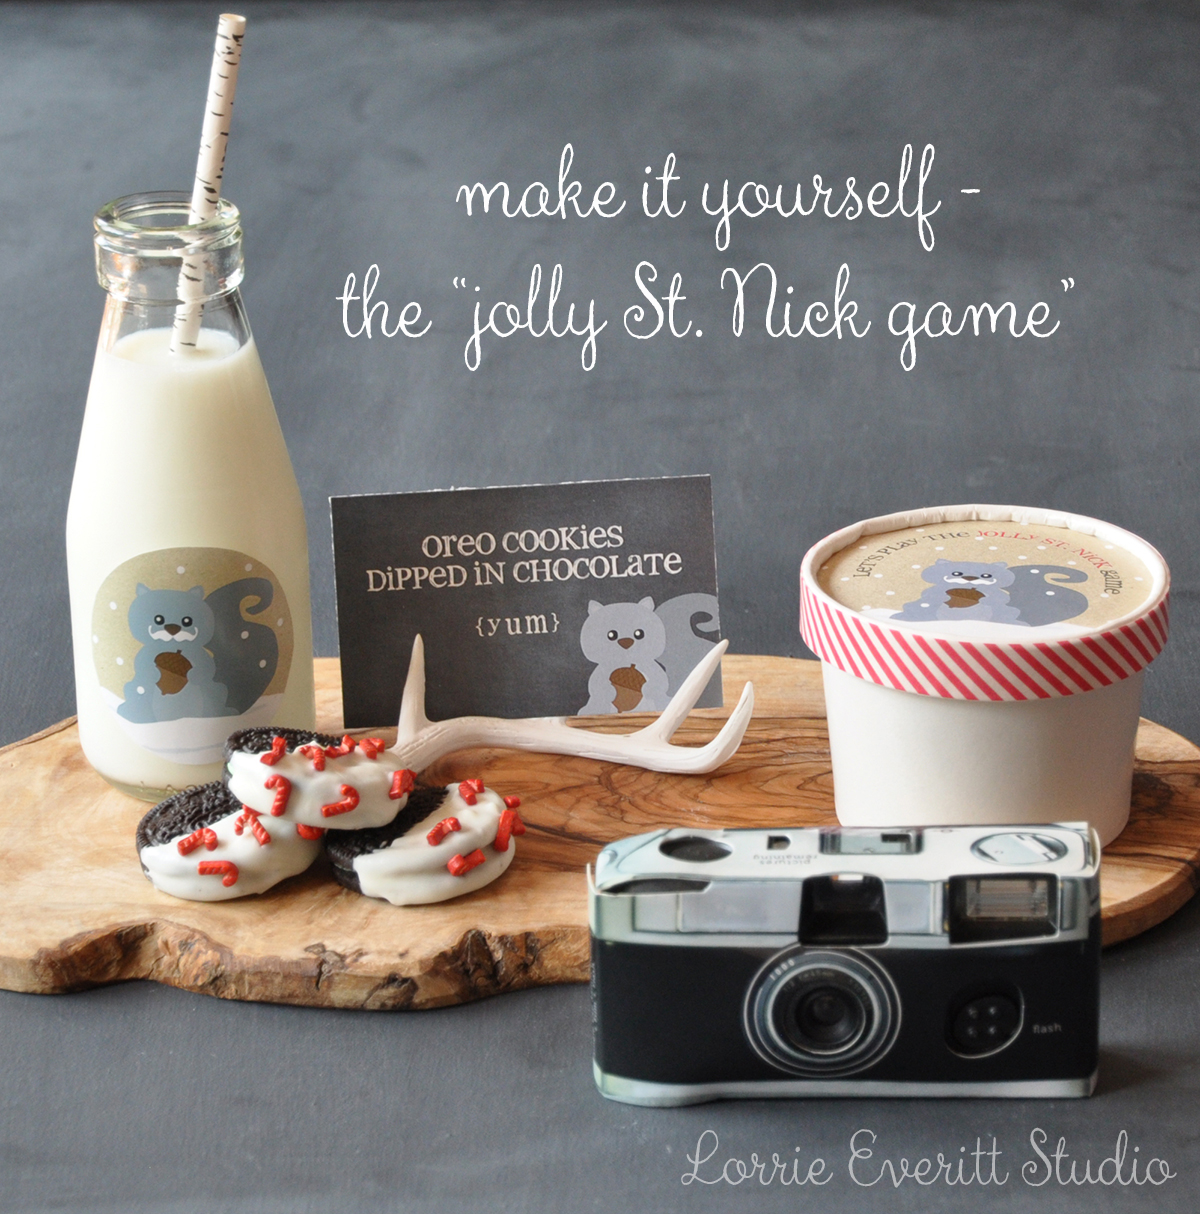 make it yourself - the jolly St. Nick game | Lorrie Everitt Studio